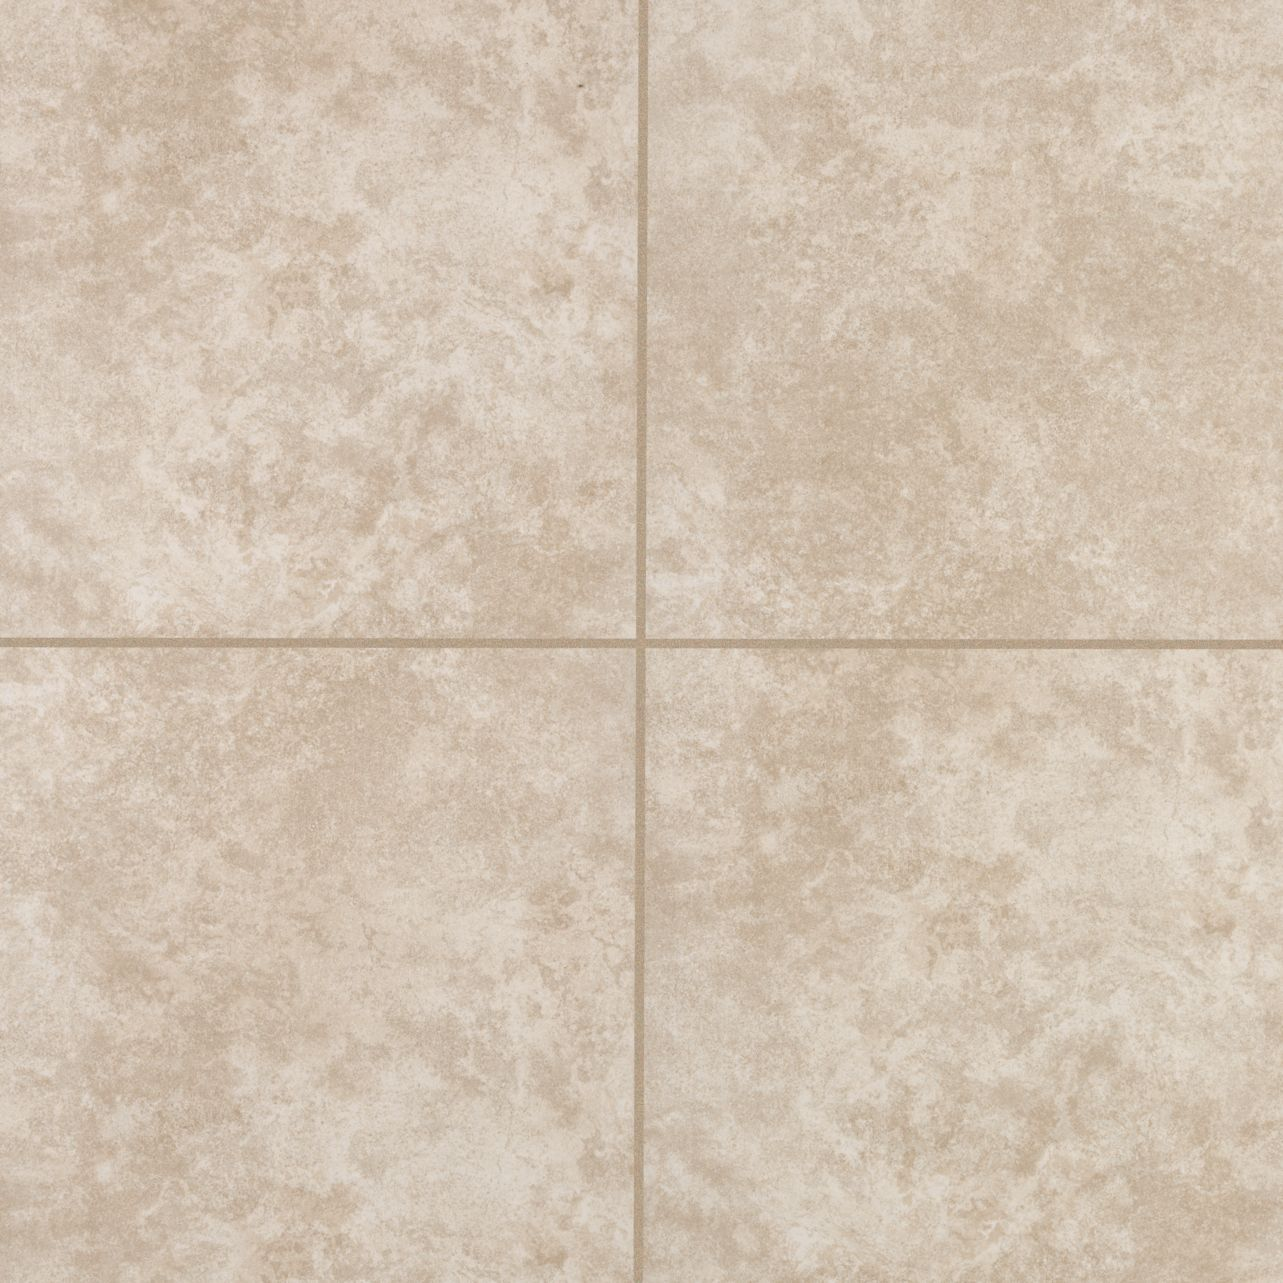 CeramicPorcelainTile Astello Floor Beige     main image